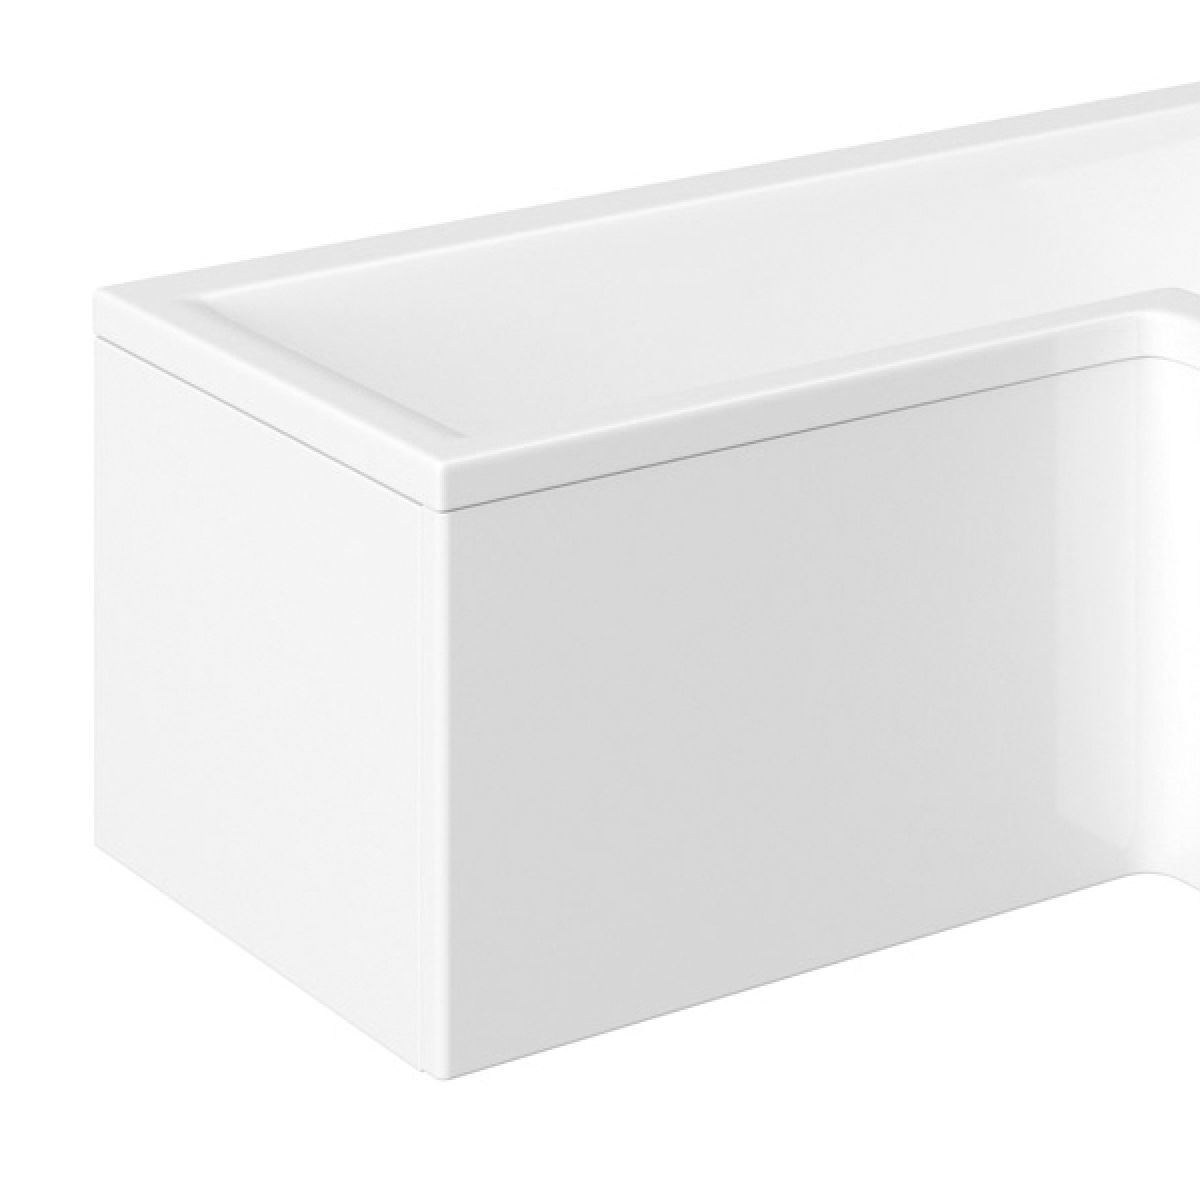 April White End Bath Panel 700mm